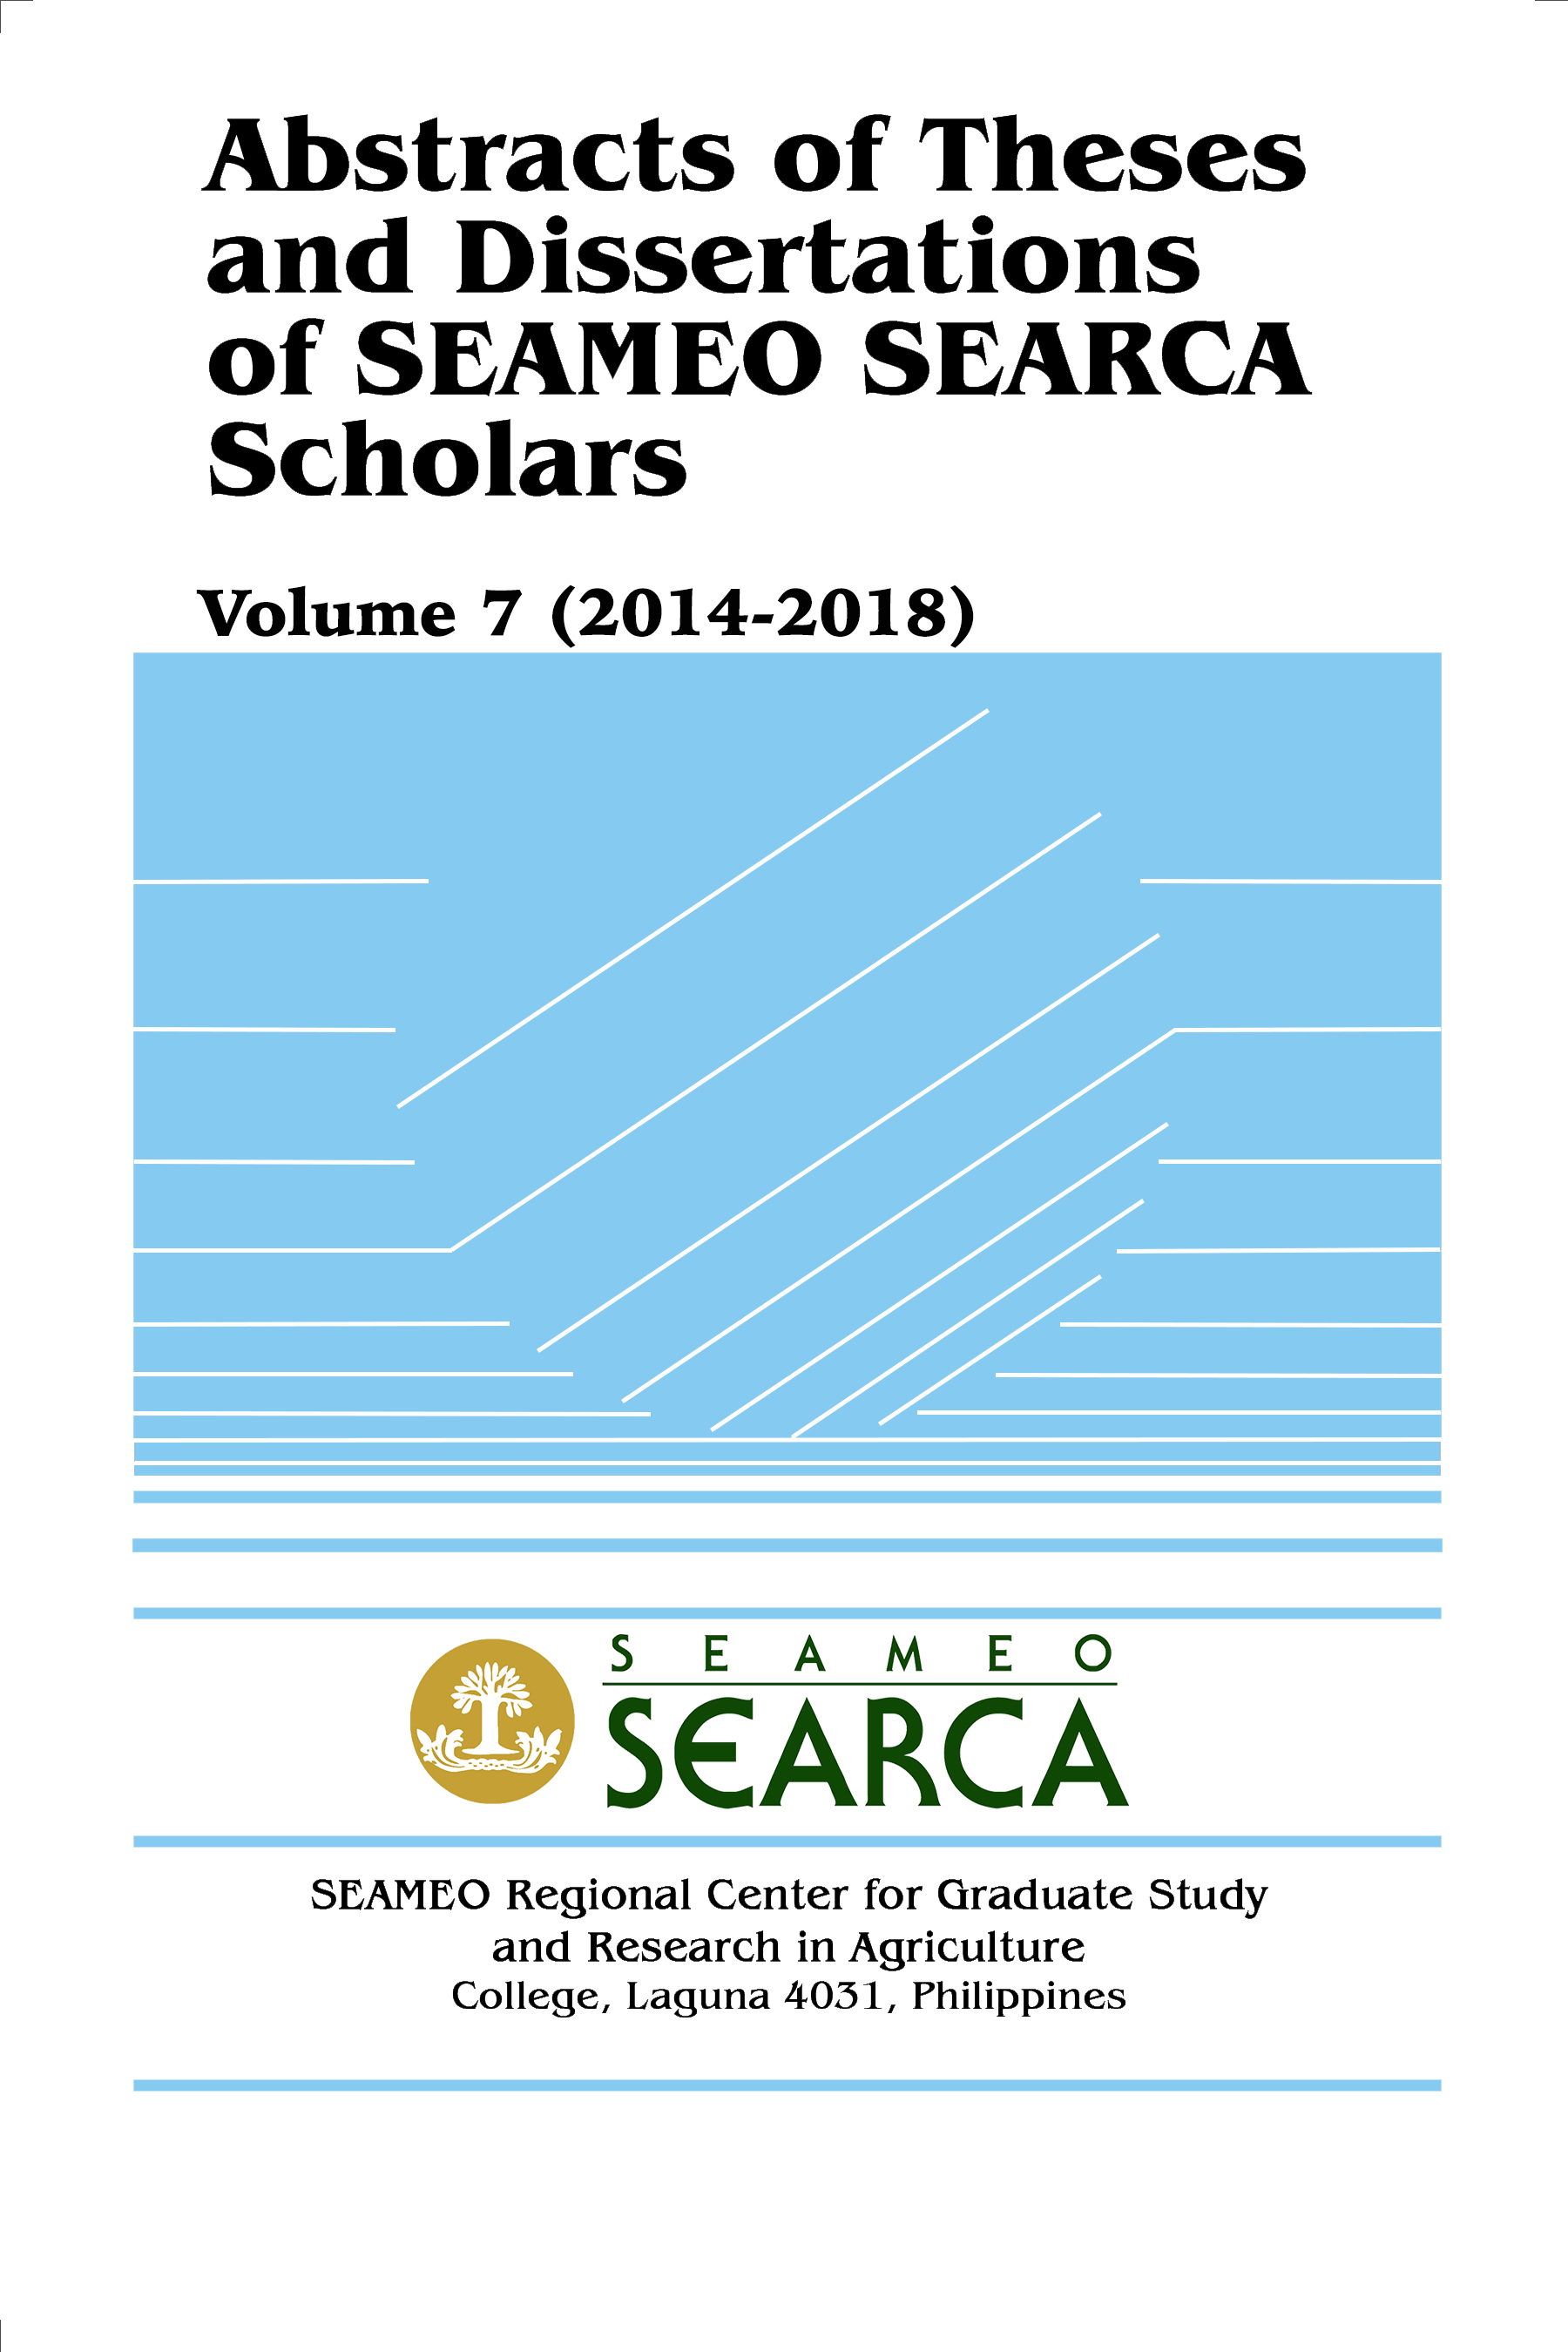 Abstracts of Theses and Dissertations of SEAMEO SEARCA Scholars Volume 7 (2014-2018)